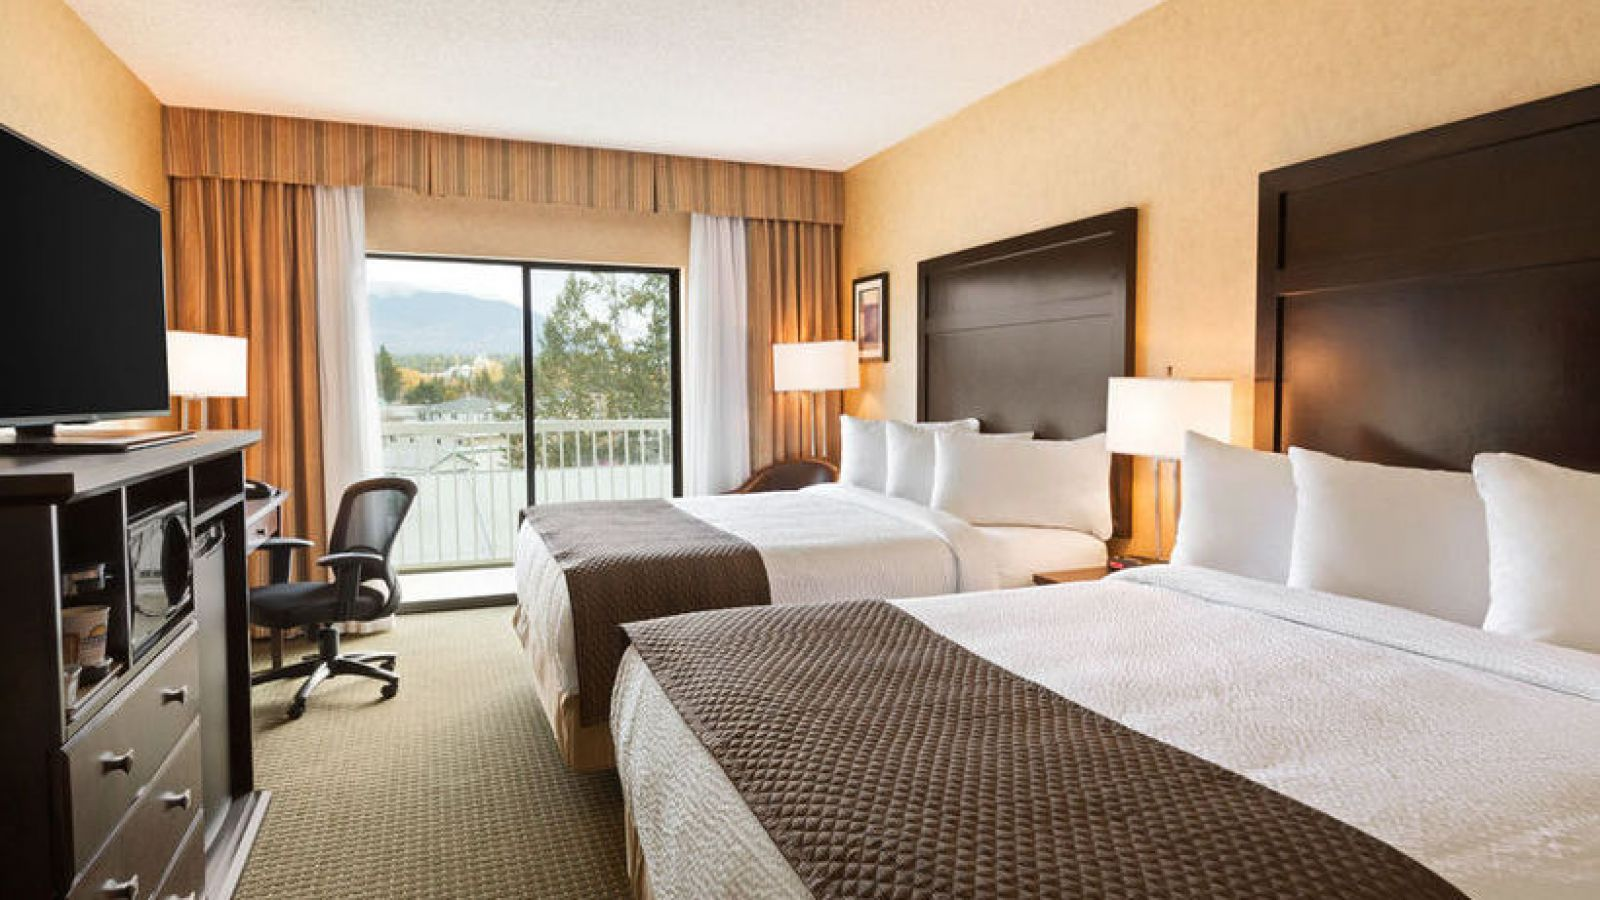 Days Inn Cranbrook - Columbia Valley golf packages